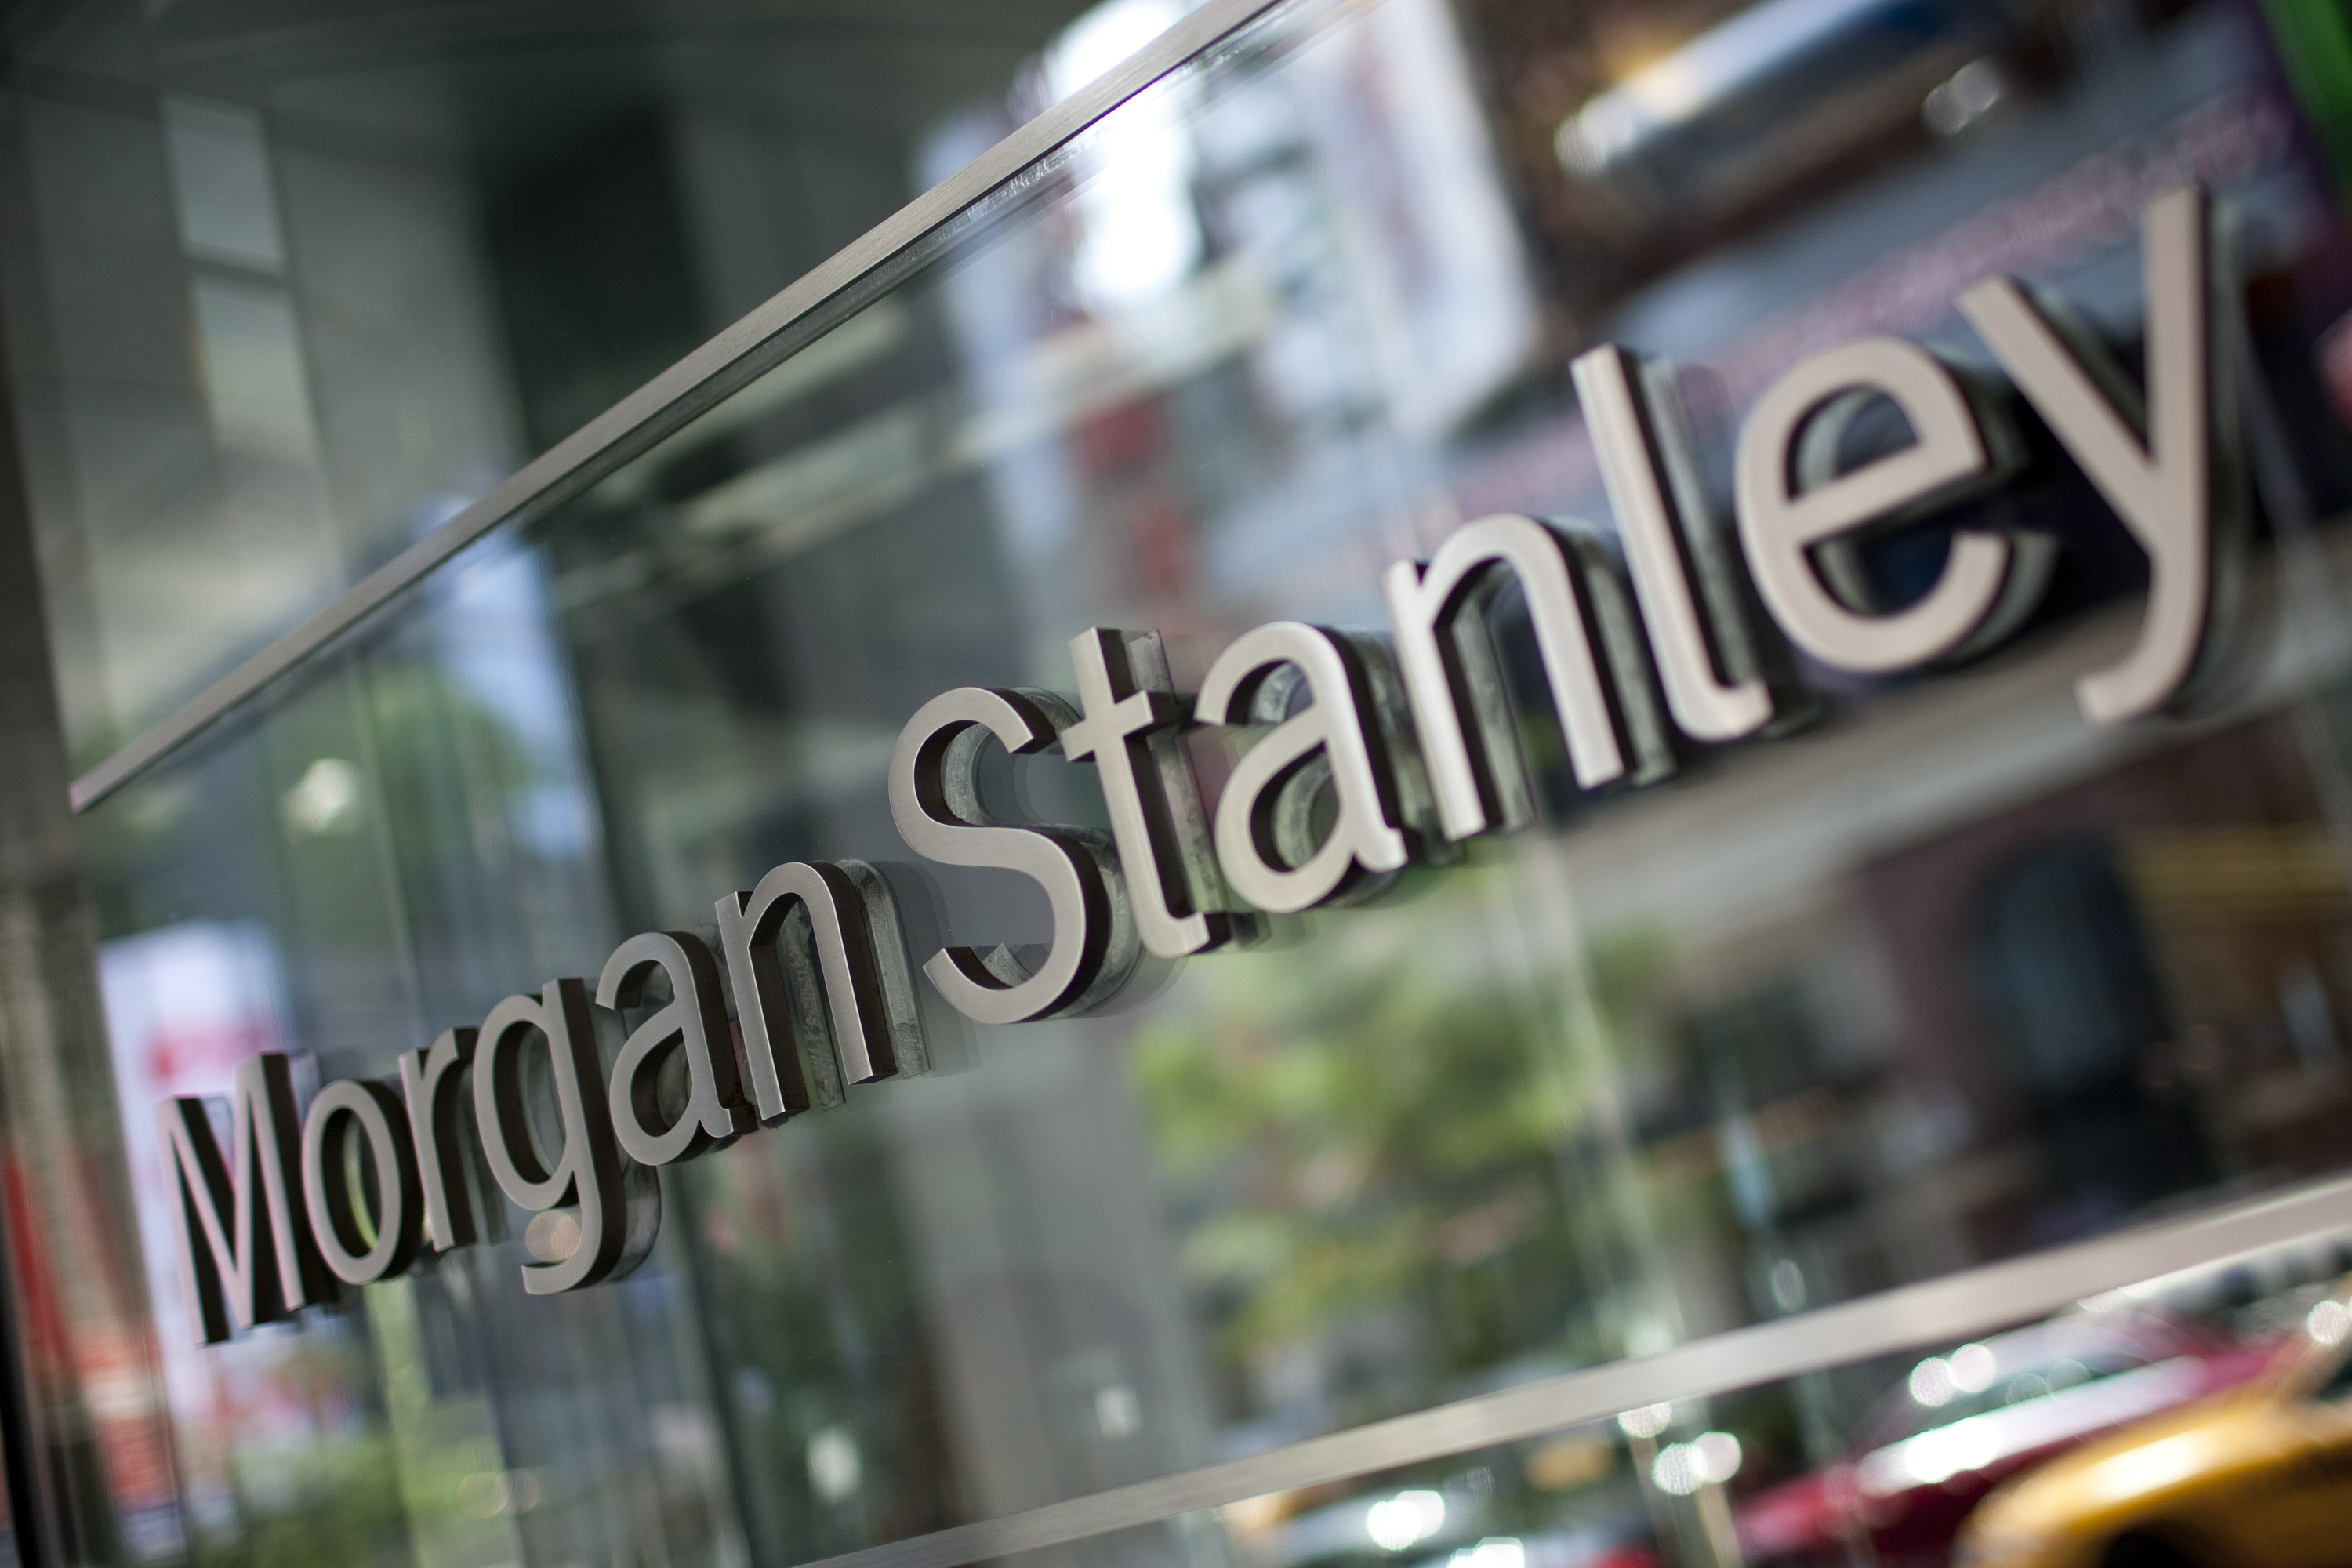 Morgan Stanley Shares Surge Most in Two Years on Trading Gains